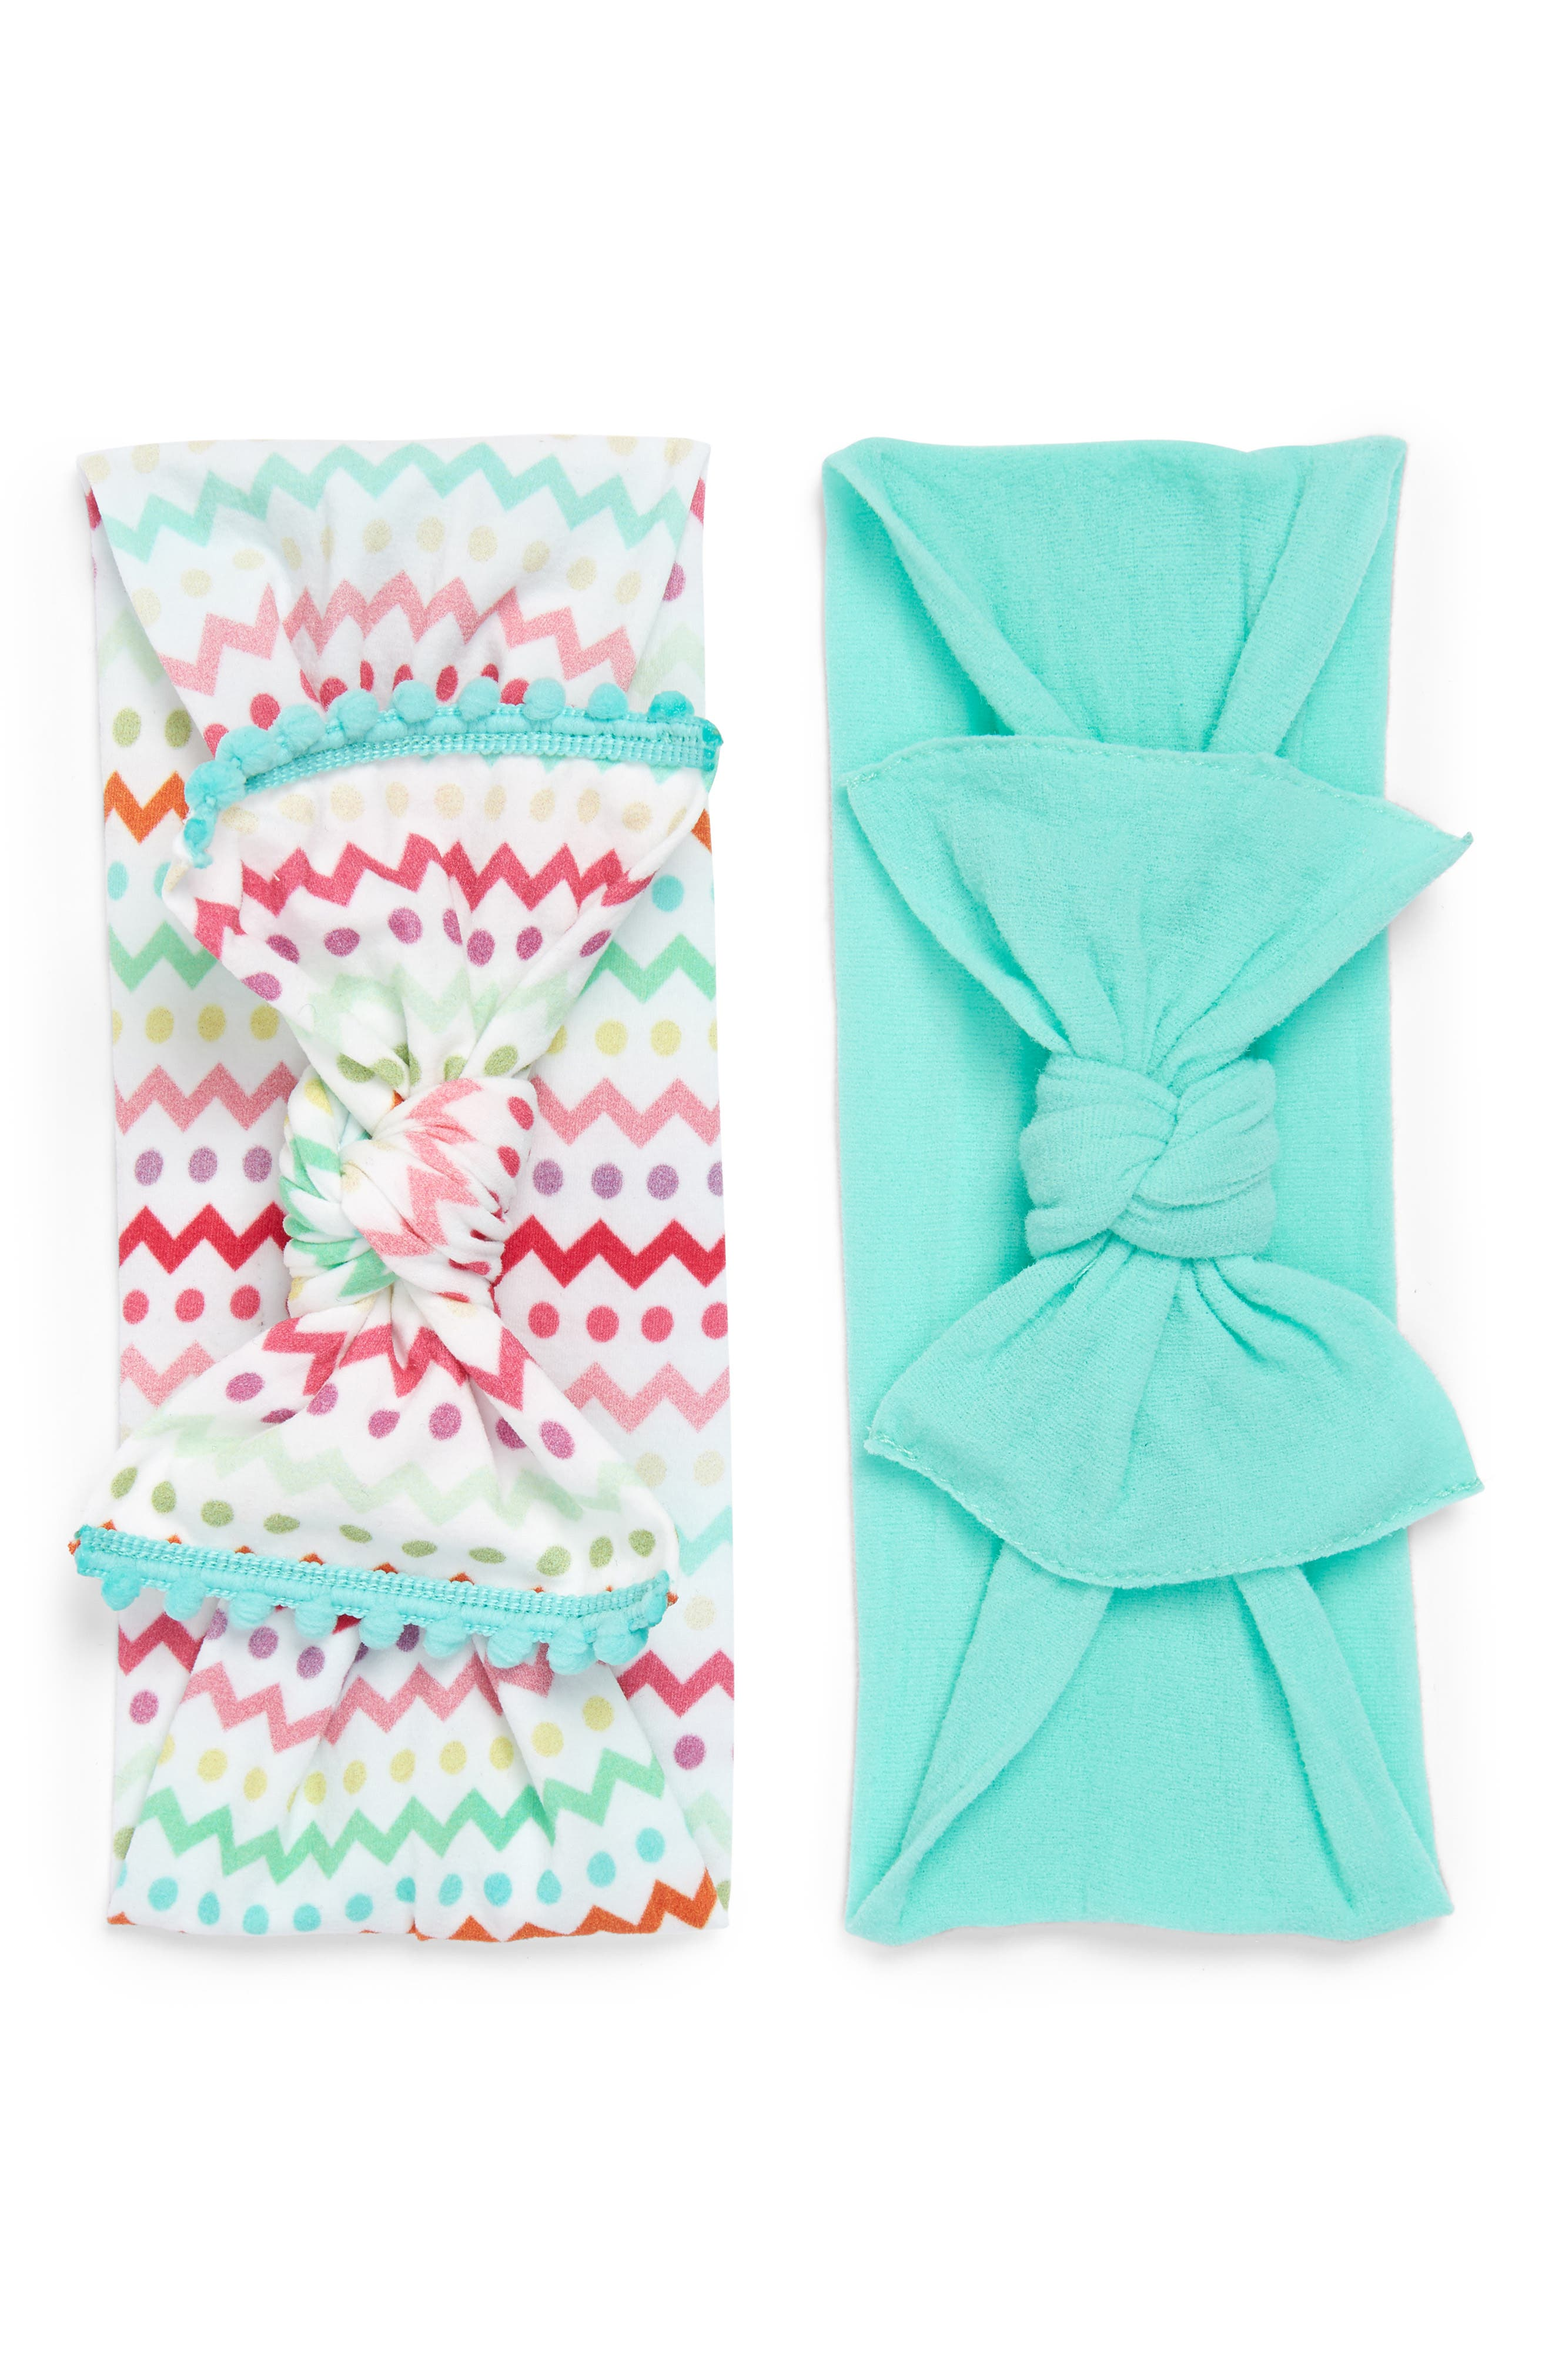 BABY BLING, 2-Pack Knotted Headbands, Main thumbnail 1, color, EASTER STRIPES/ MINT